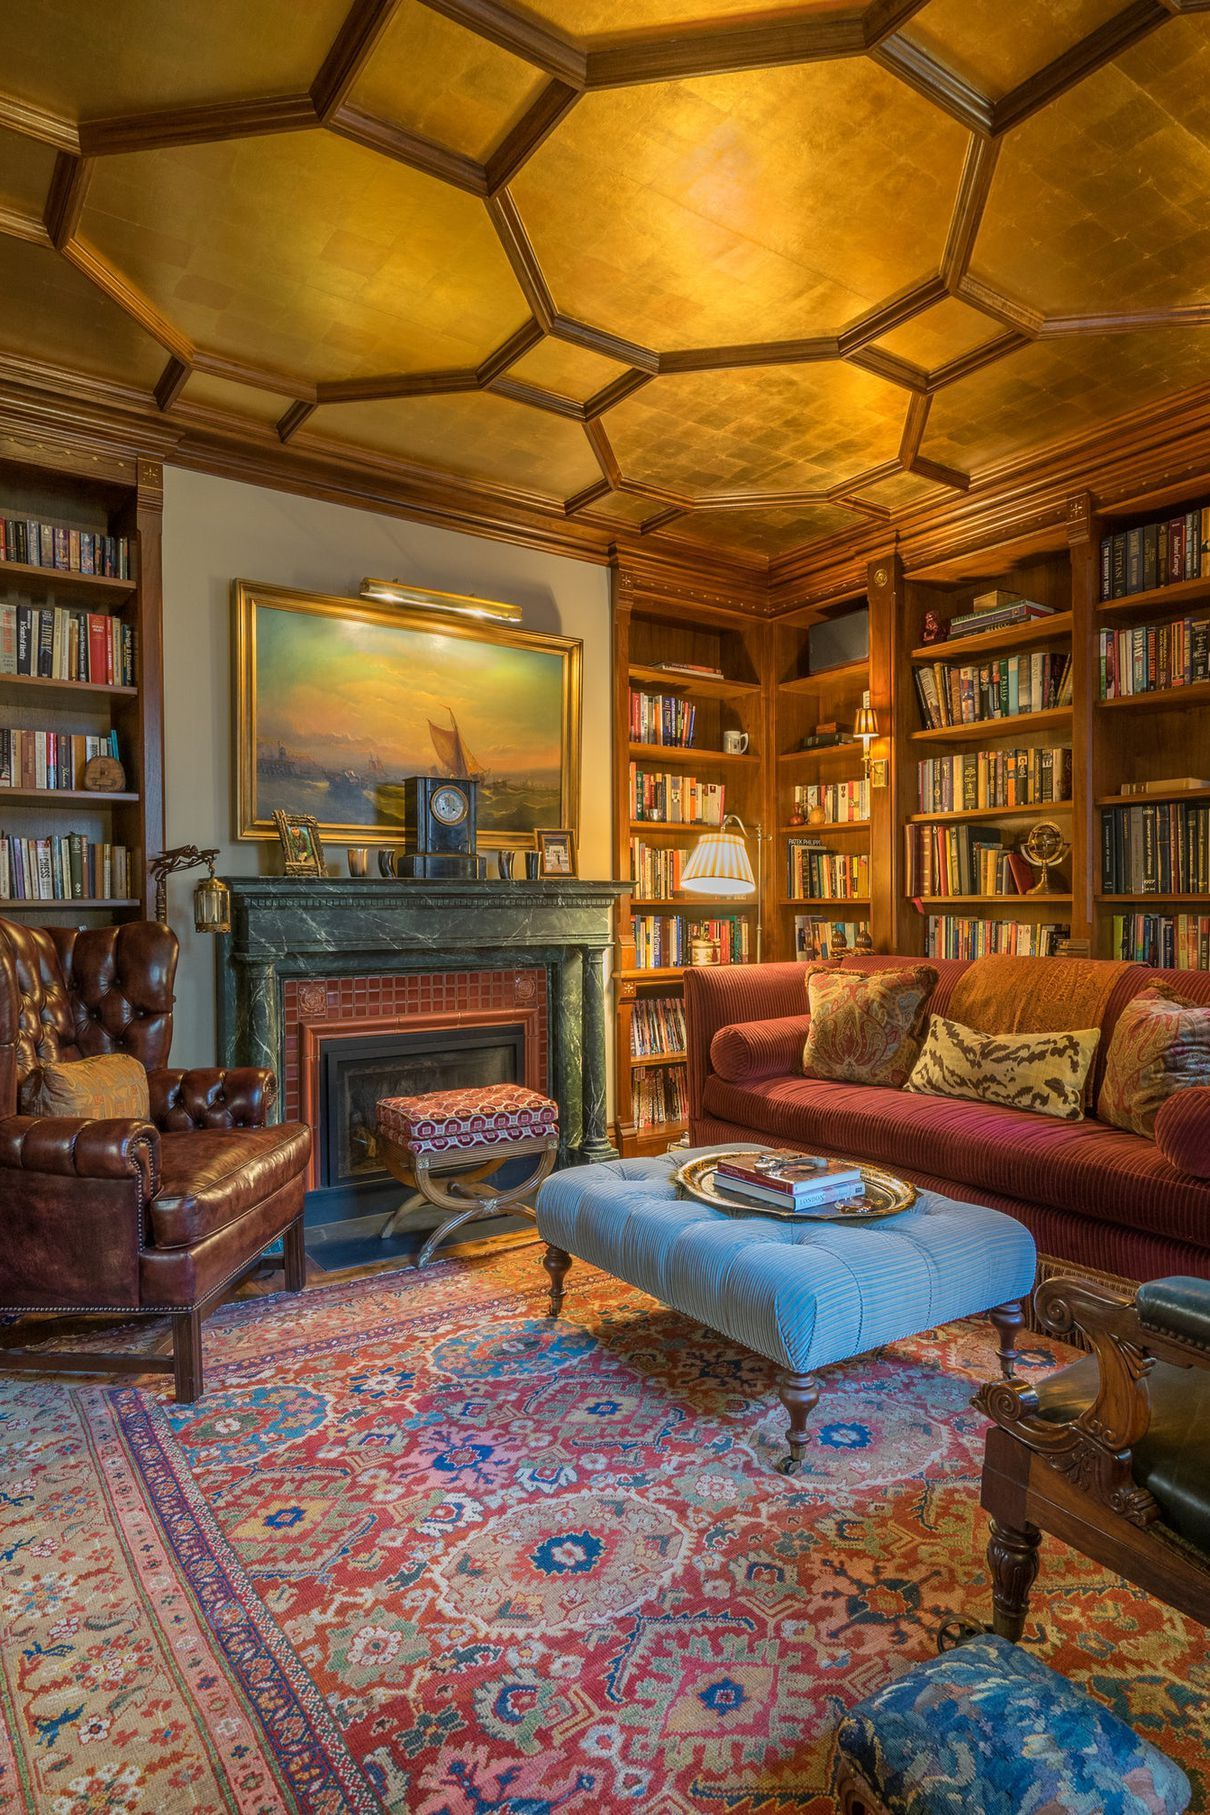 Interior Design Home Library: 45 Examples That Prove Your Books Deserve Attention